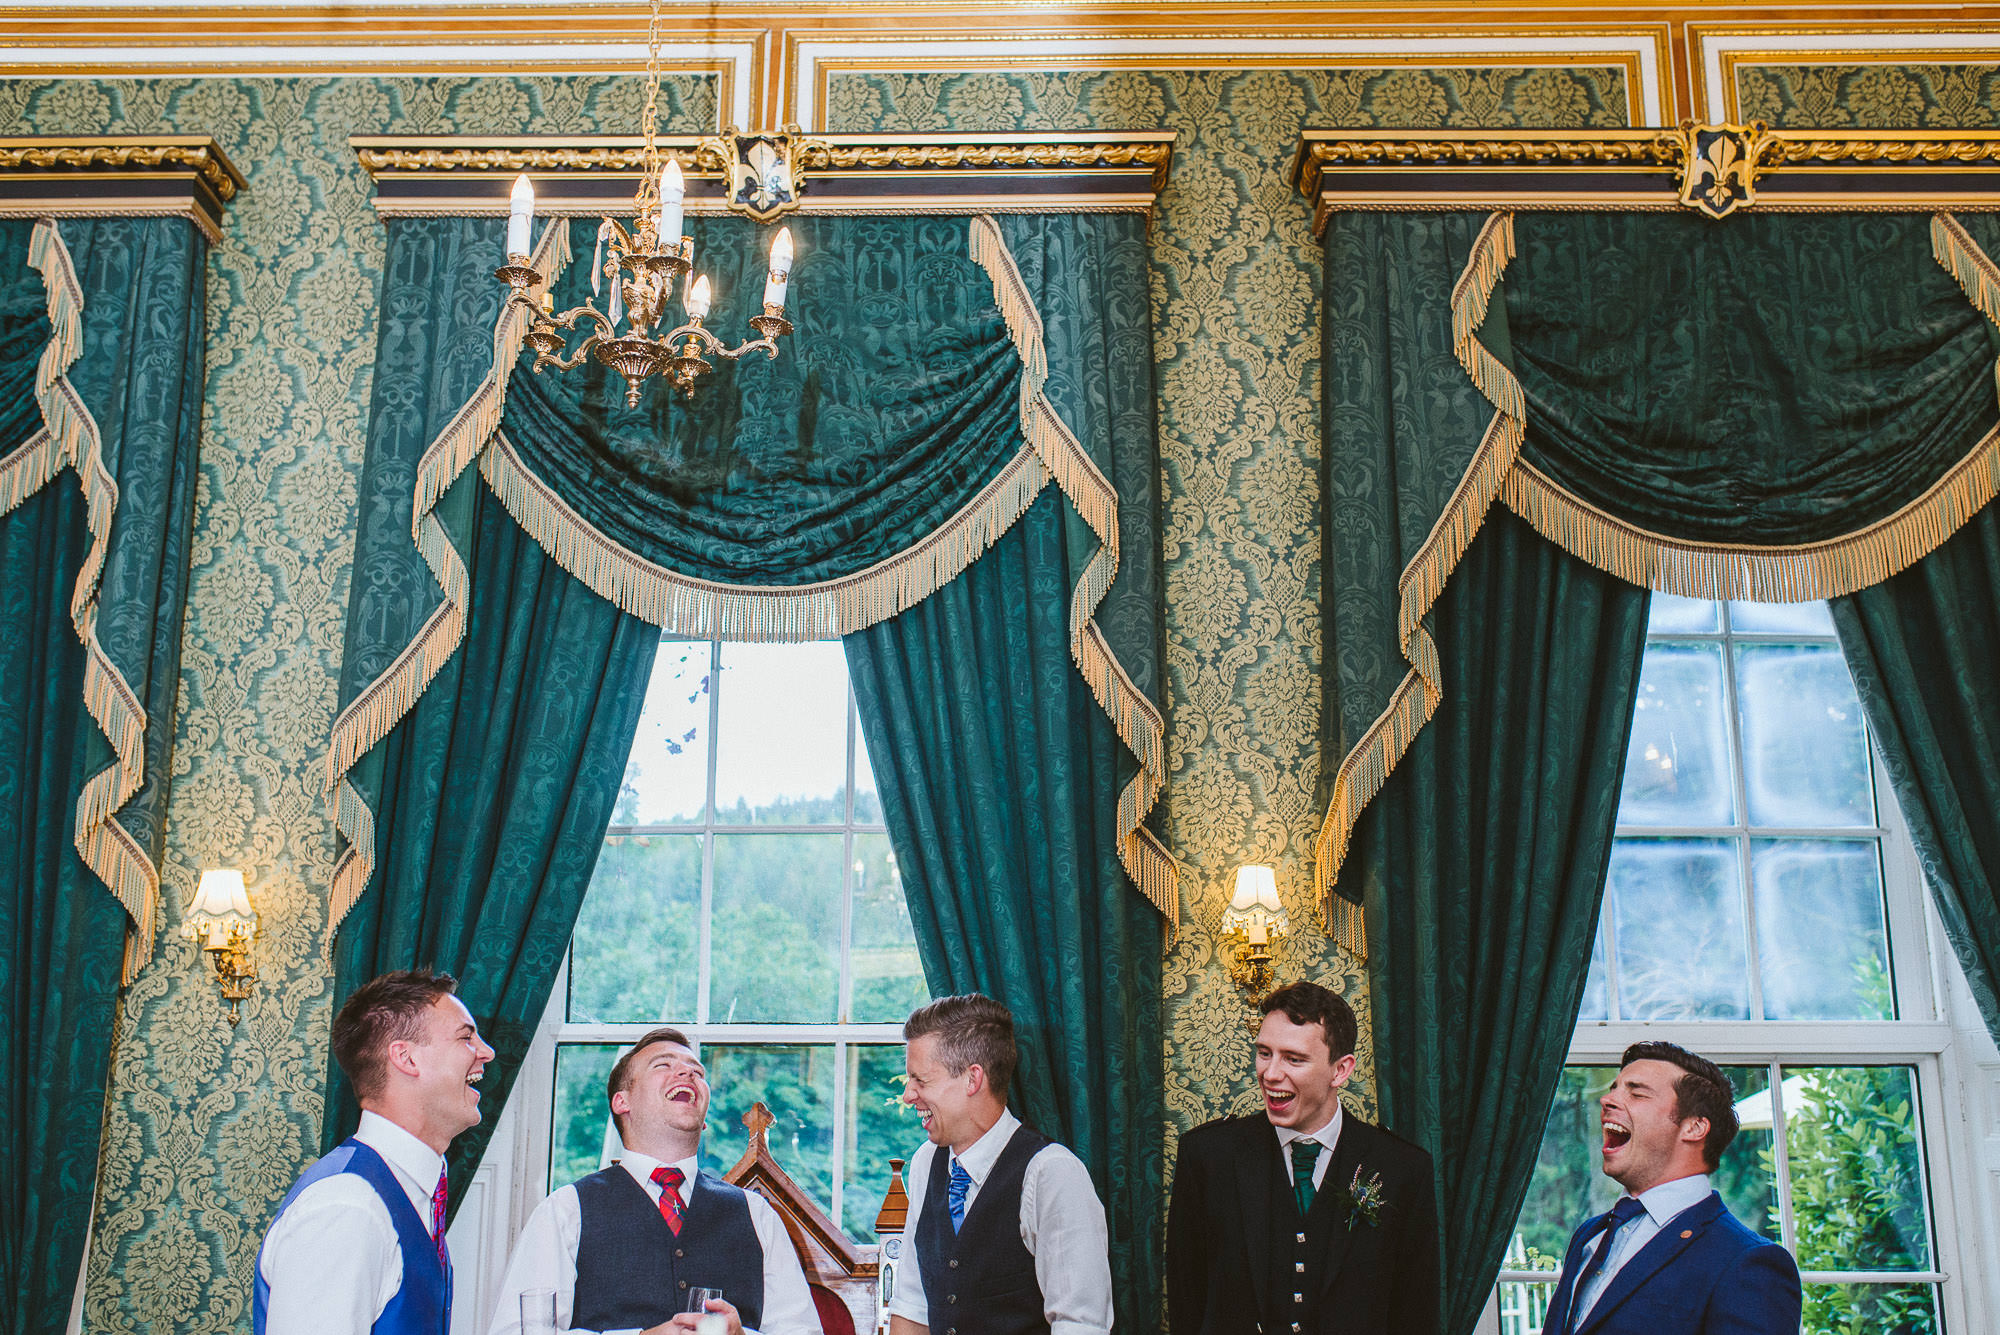 Wedding at Drumtochty Castle